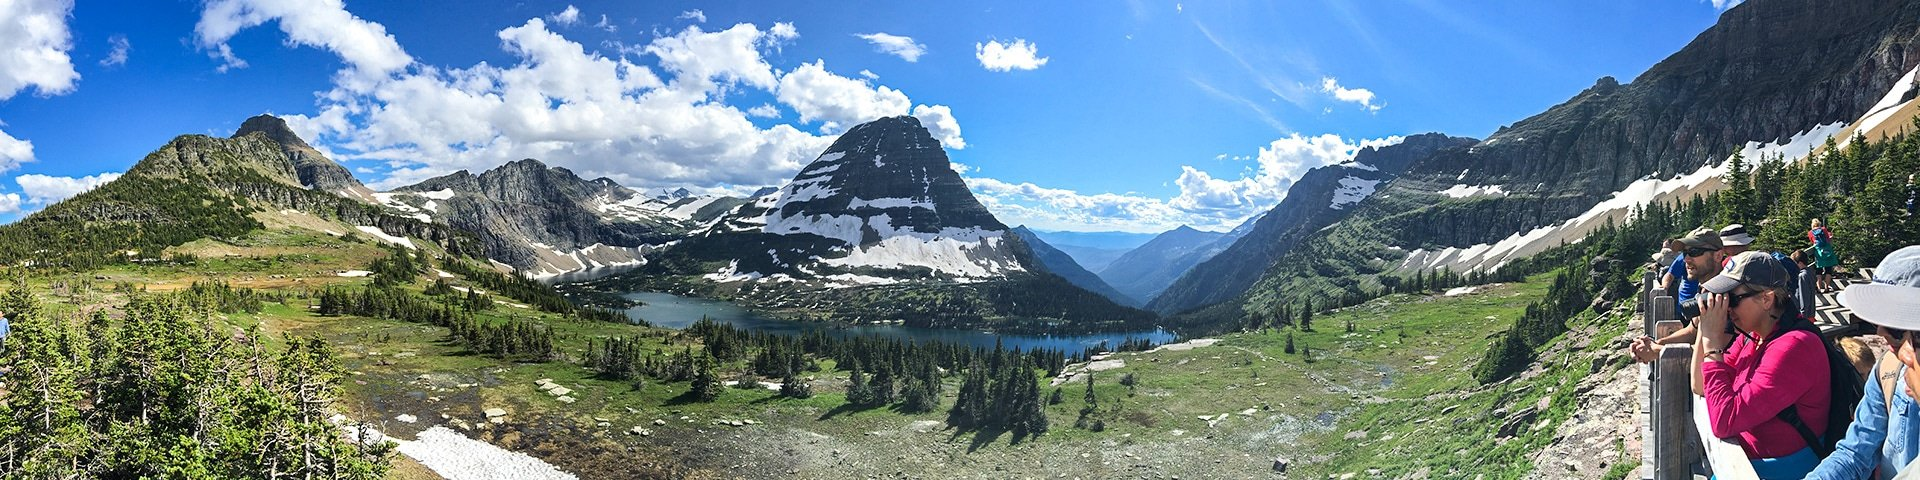 Day-hikes in Glacier National Park, Montana